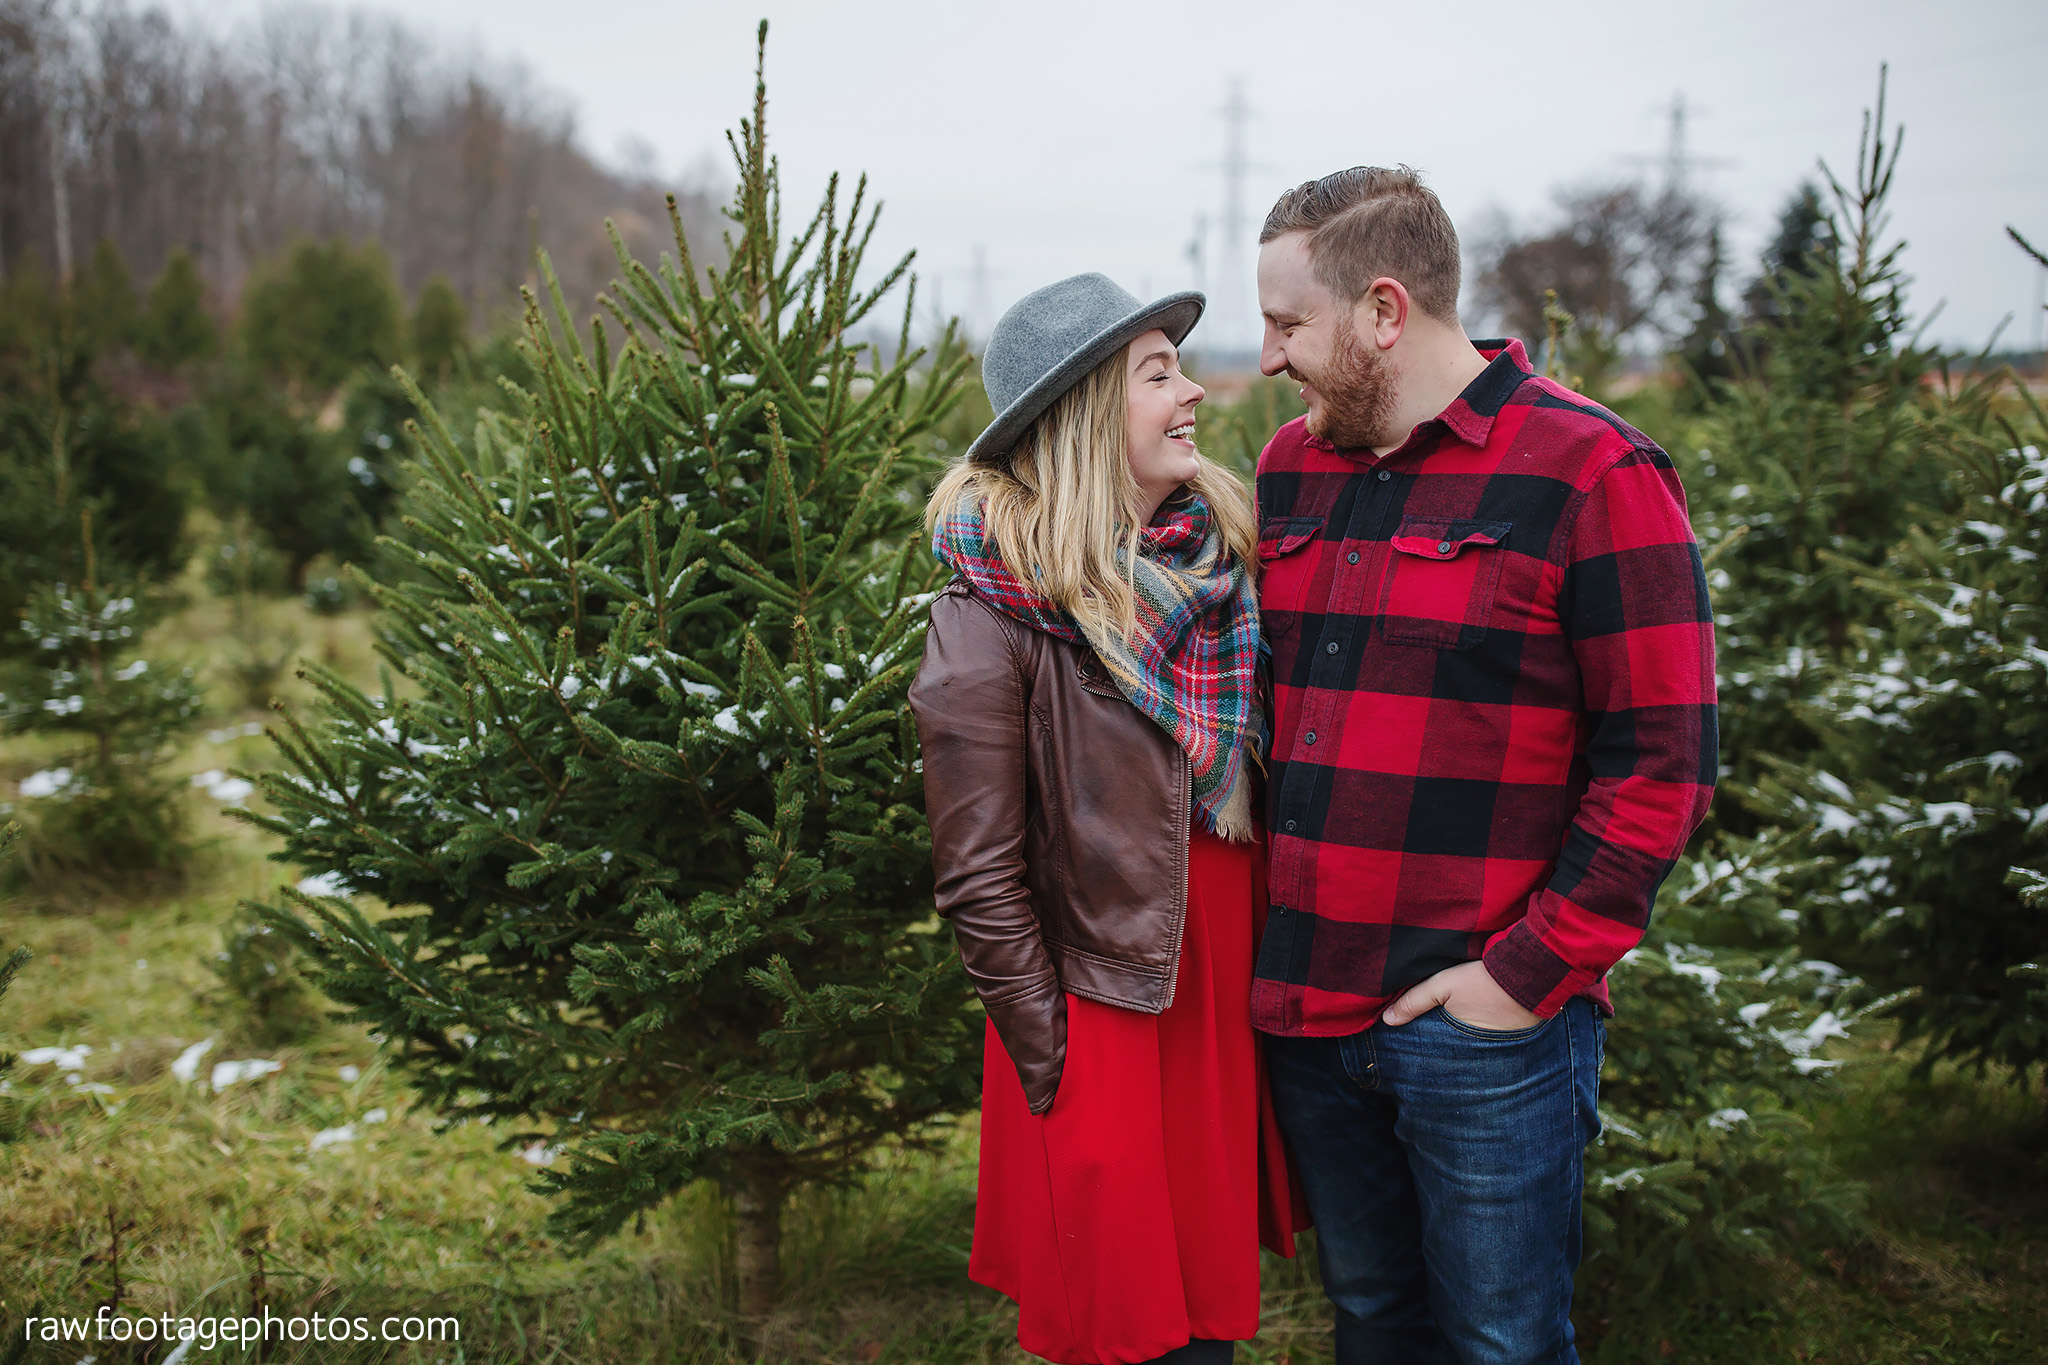 london_ontario_family_photographer-raw_footage_photography-tree_farm_minis-christmas_sessions-winter0046.jpg